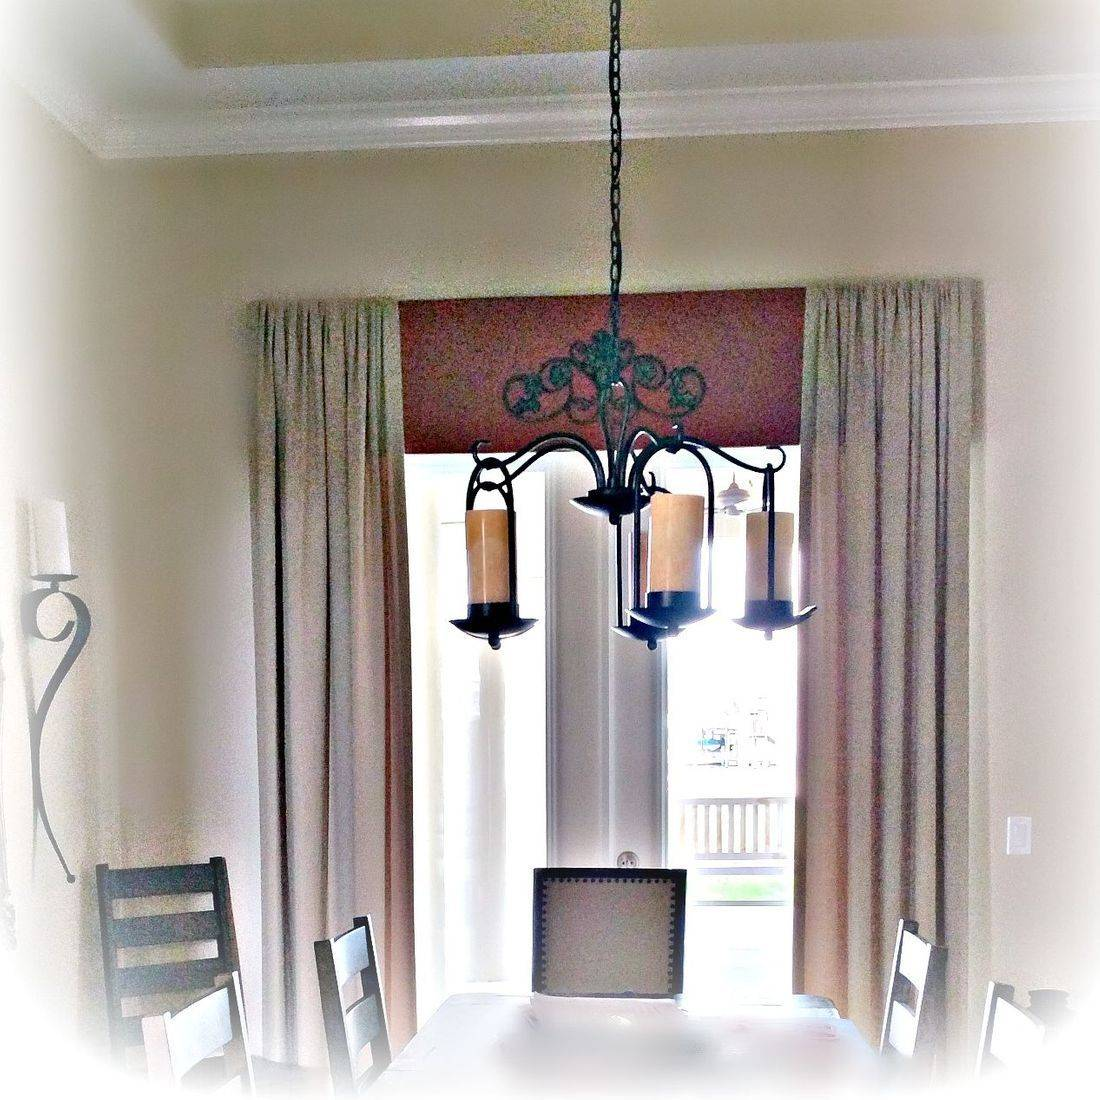 Triple Layered, Shaped Cornices with nailheads - Lakeland residence